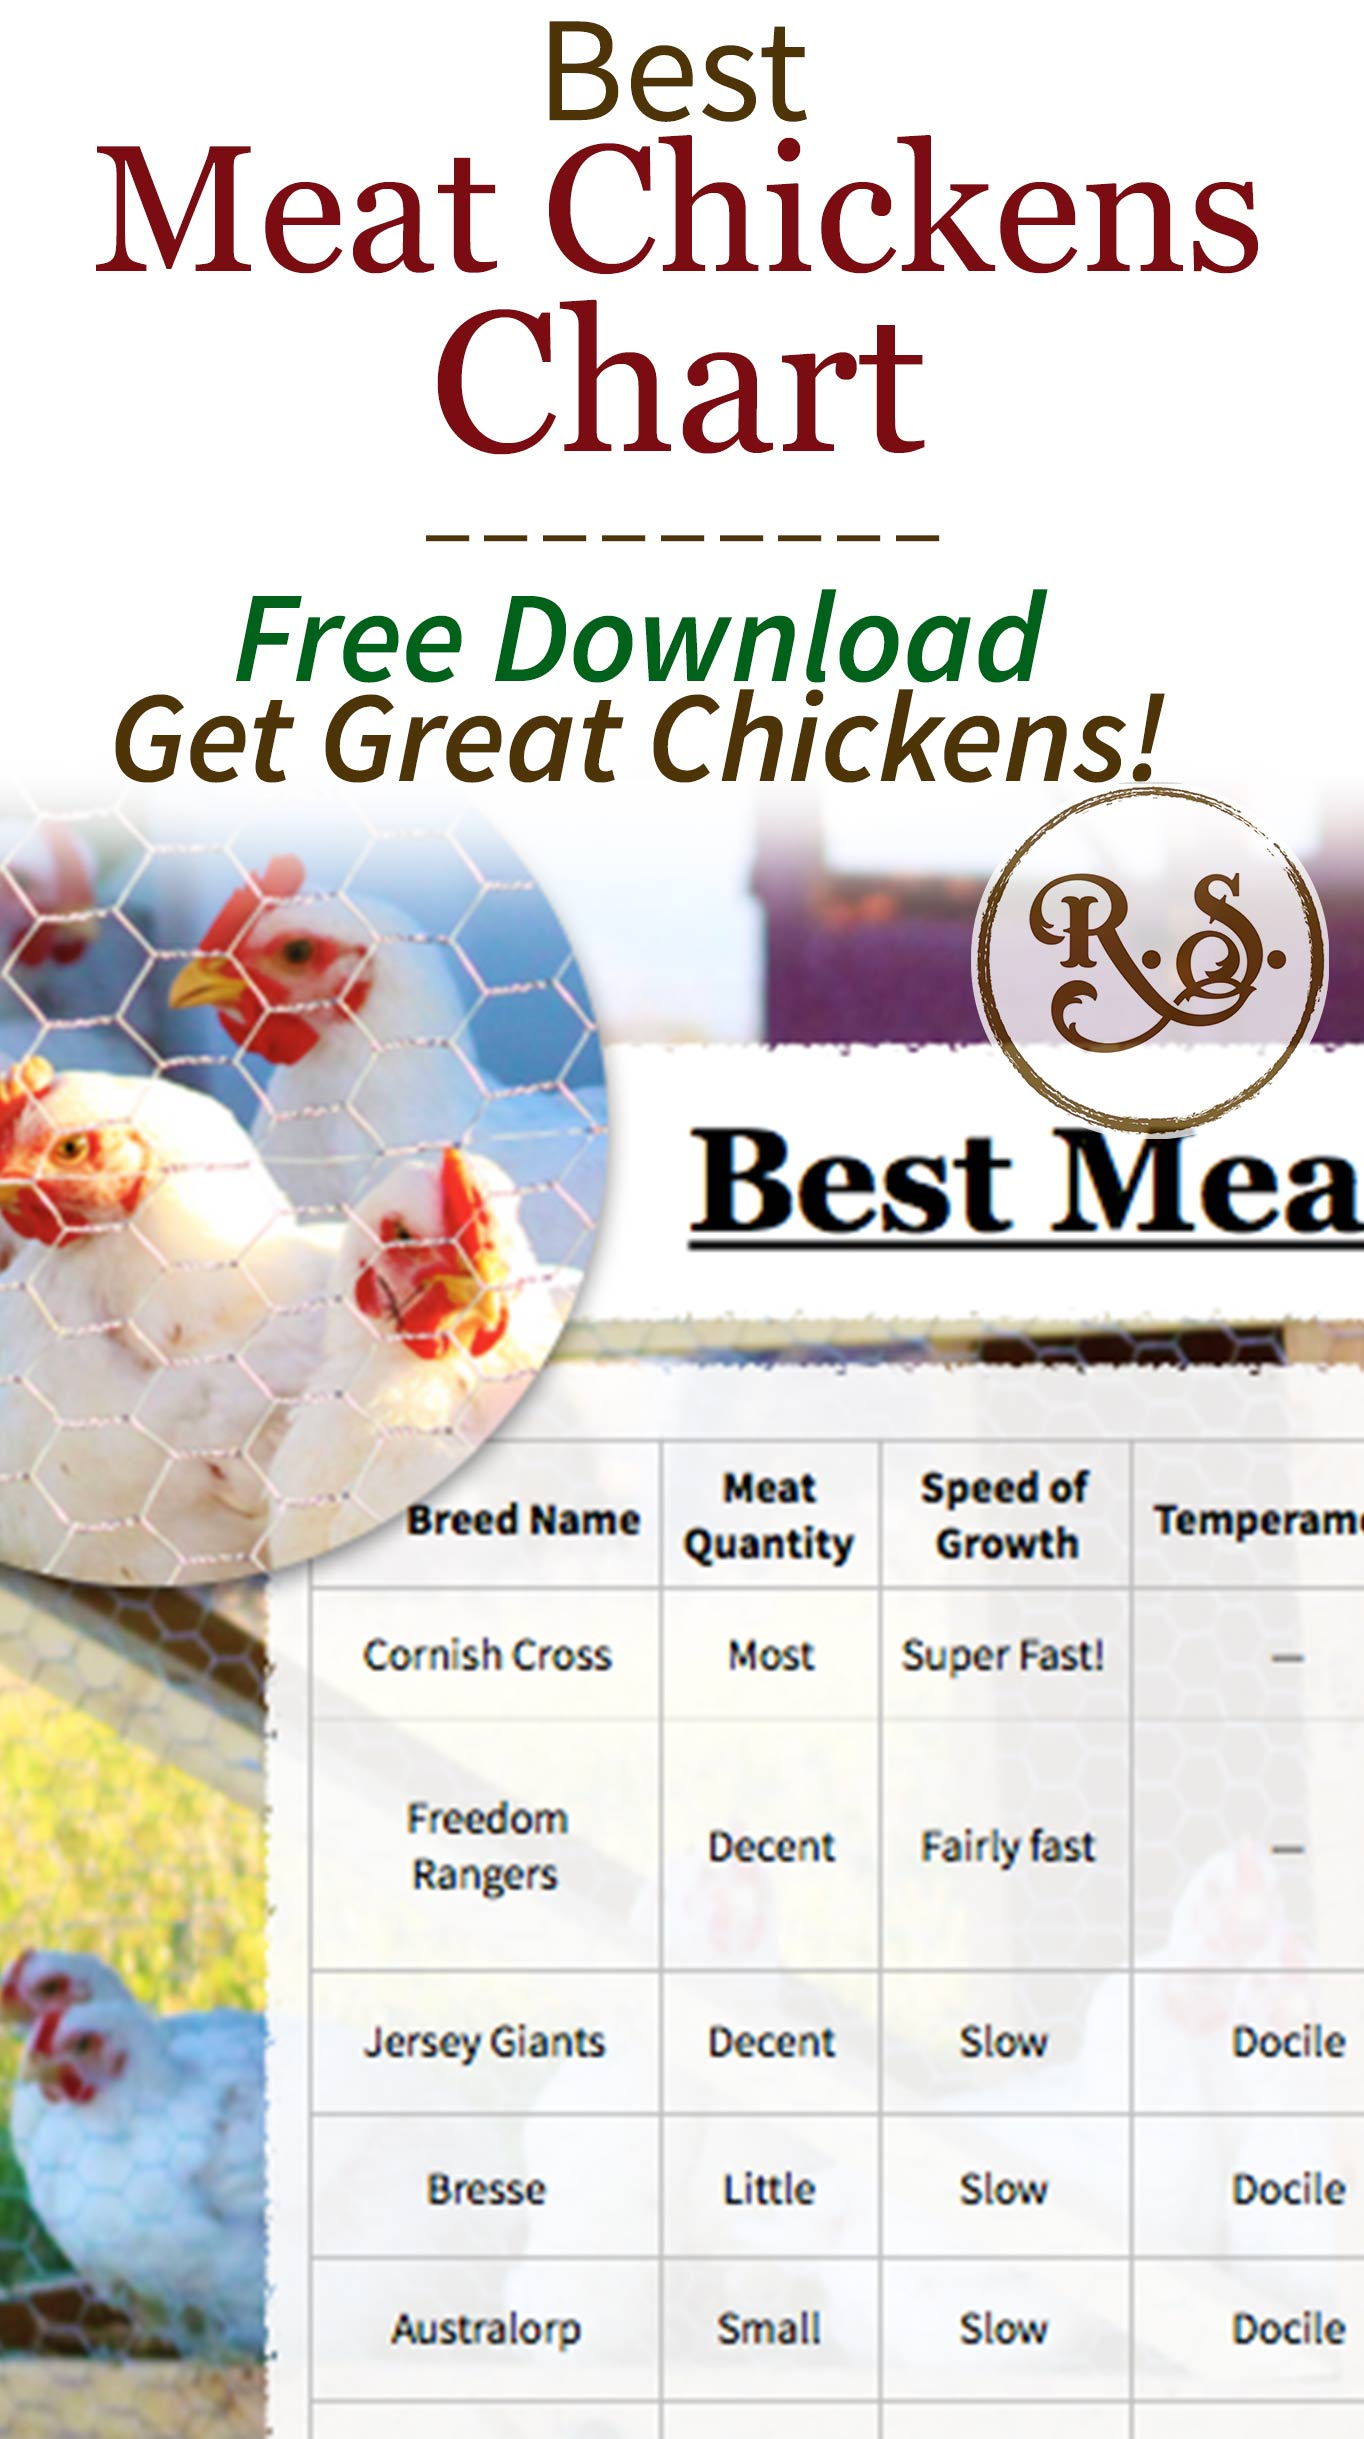 Get your best meat chickens chart! 12 meat chicken breeds which are great for raising on your homestead. Heritage and cross-bred broilers are compared. An instant download you can print out now.